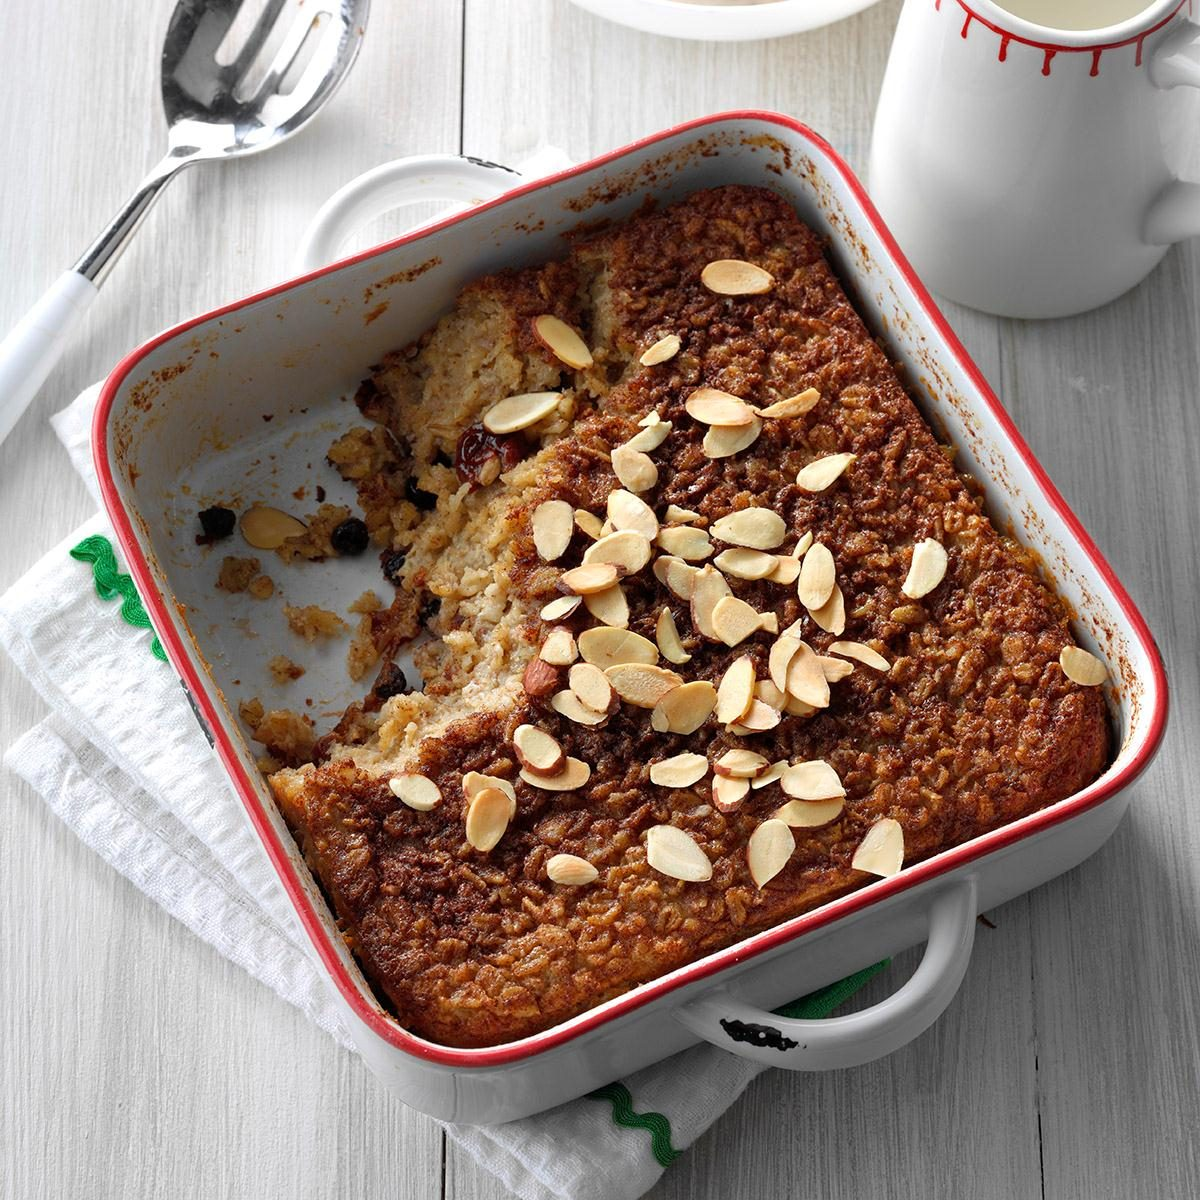 Overnight Baked Oatmeal